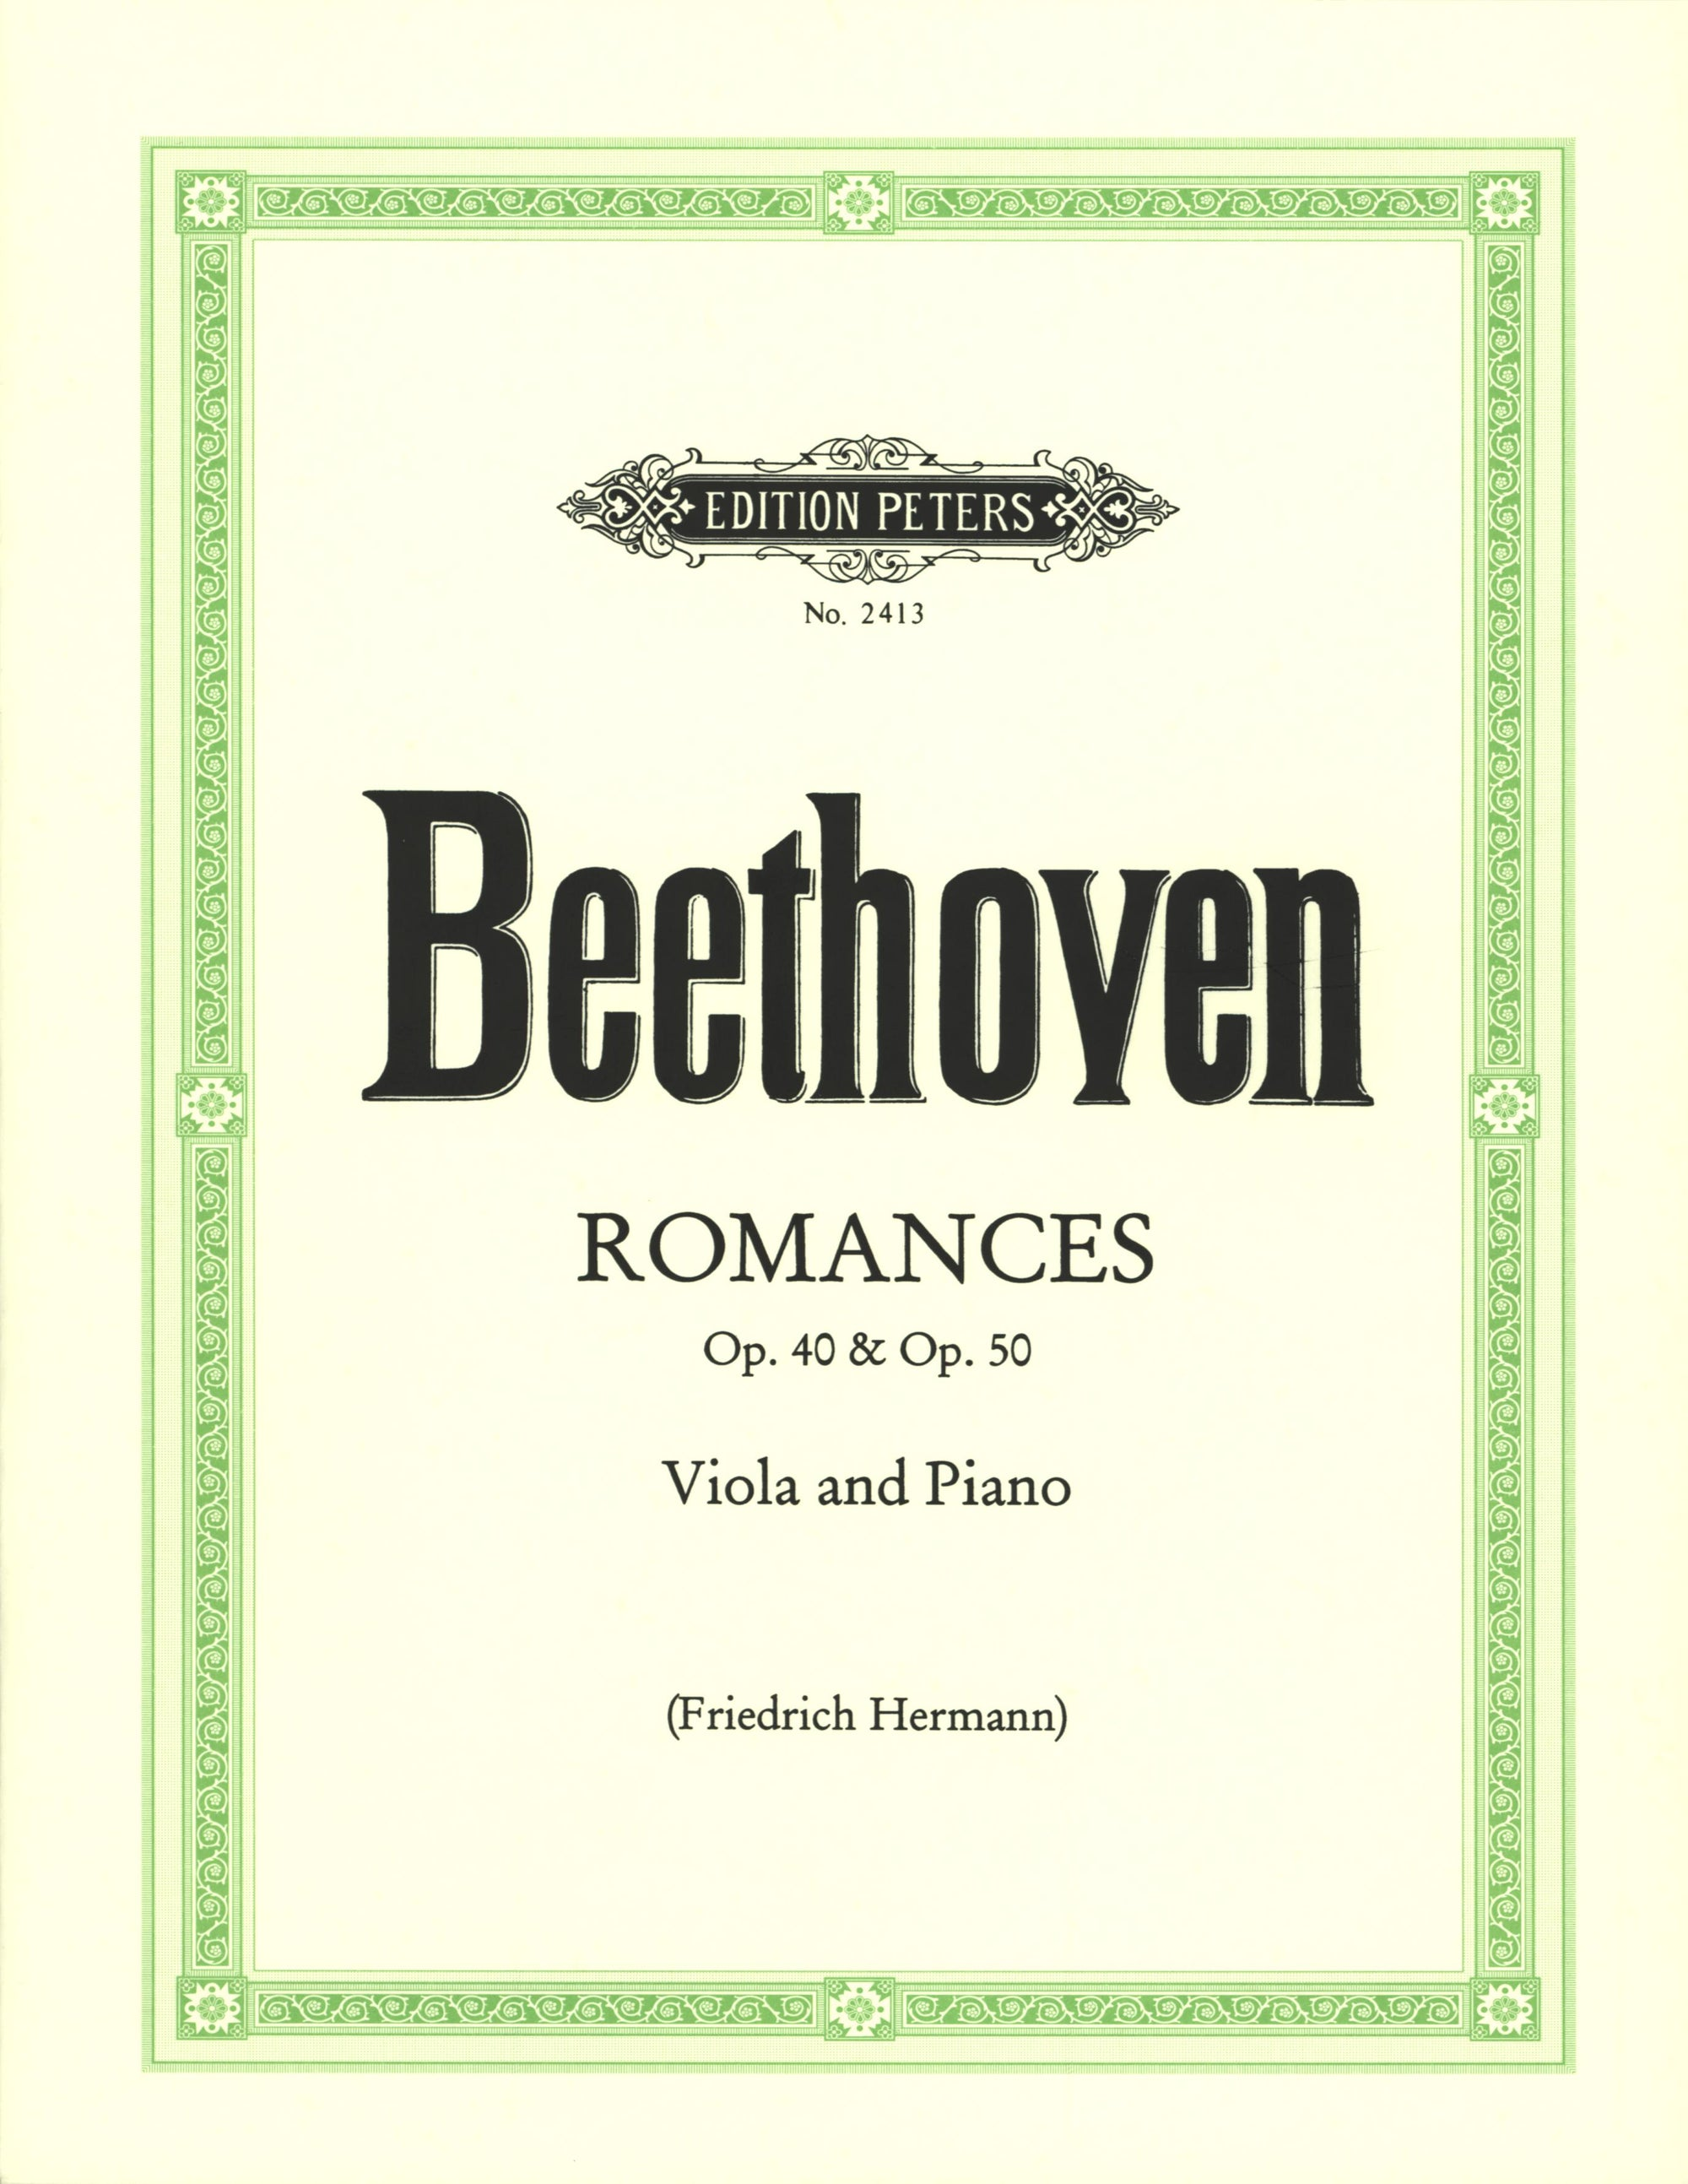 Beethoven: Romances in G Major, Op. 40 & F Major, Op. 50 (arr. for viola)